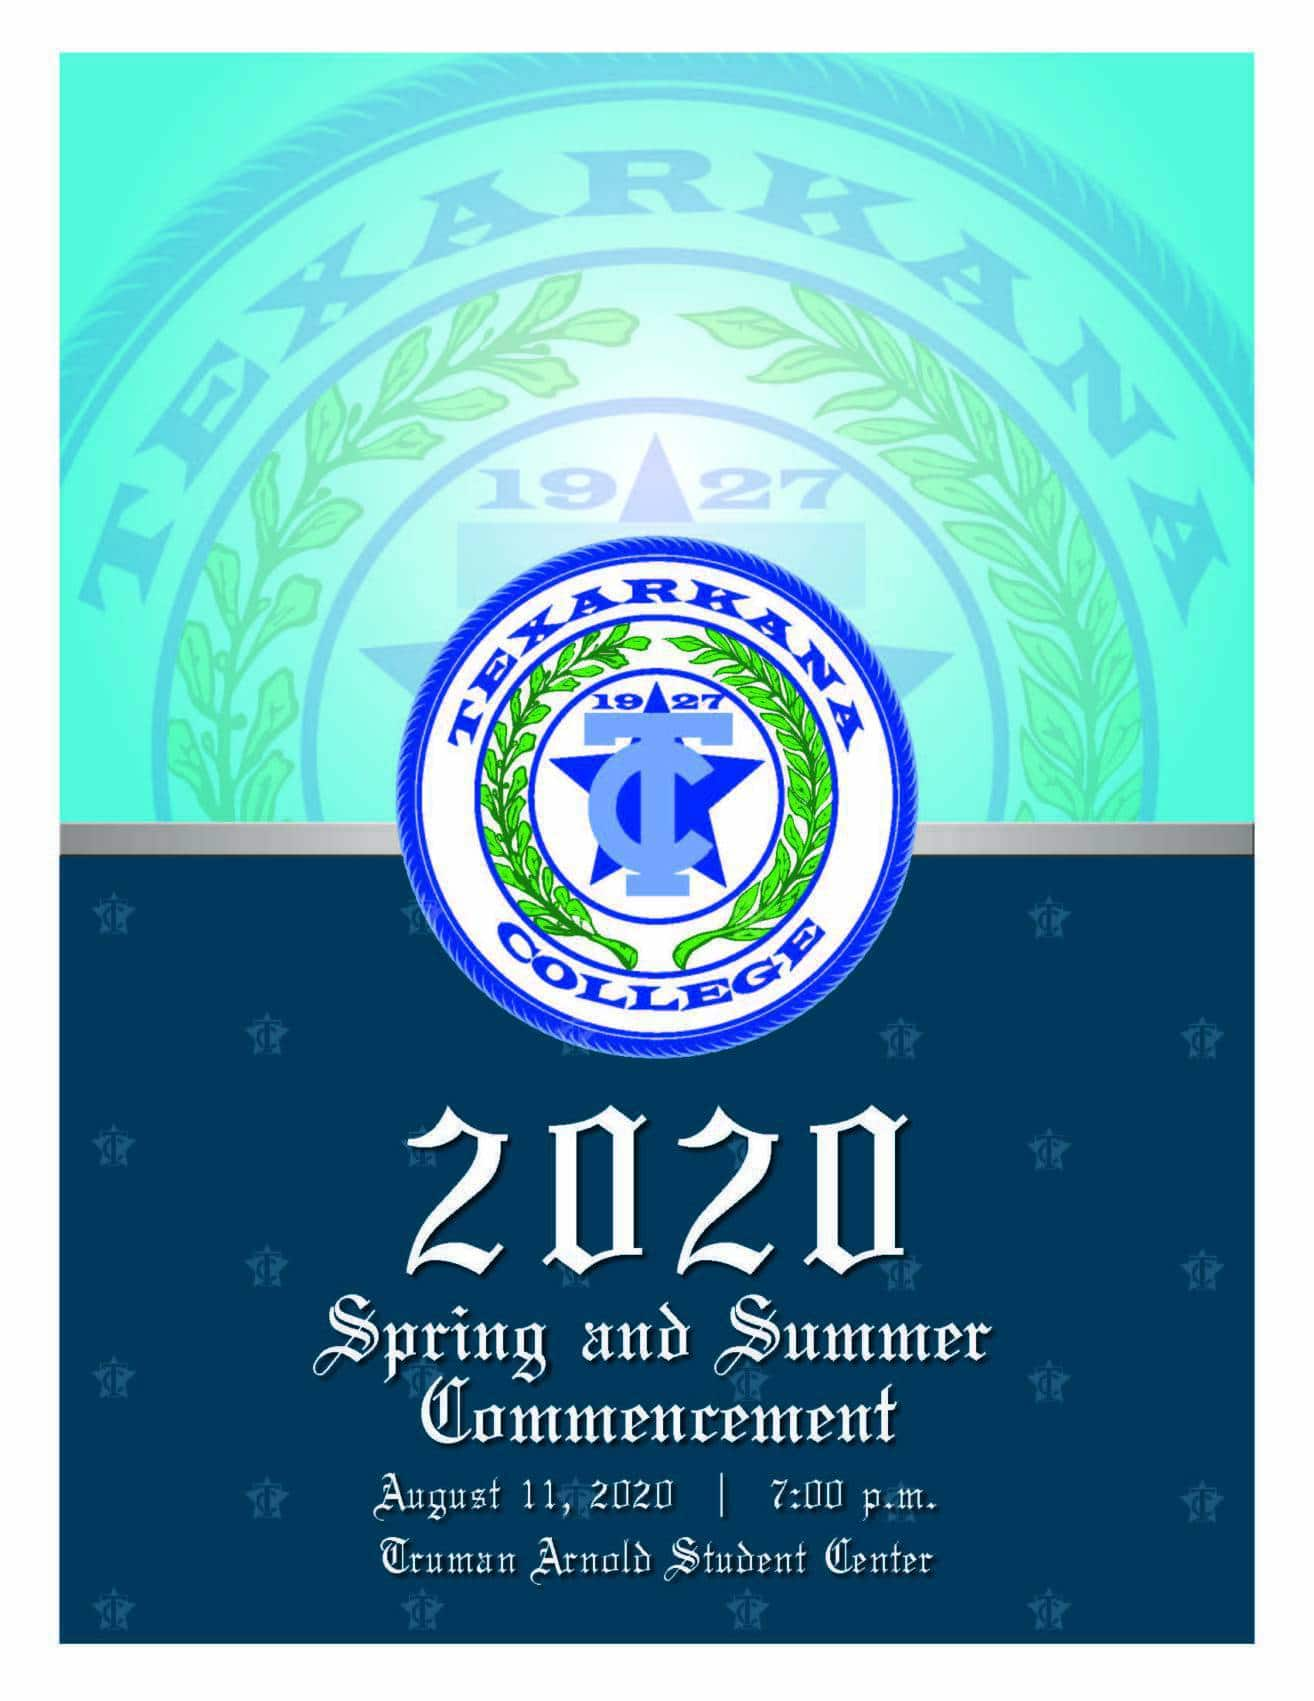 2020 Spring and Summer Commencement program cover